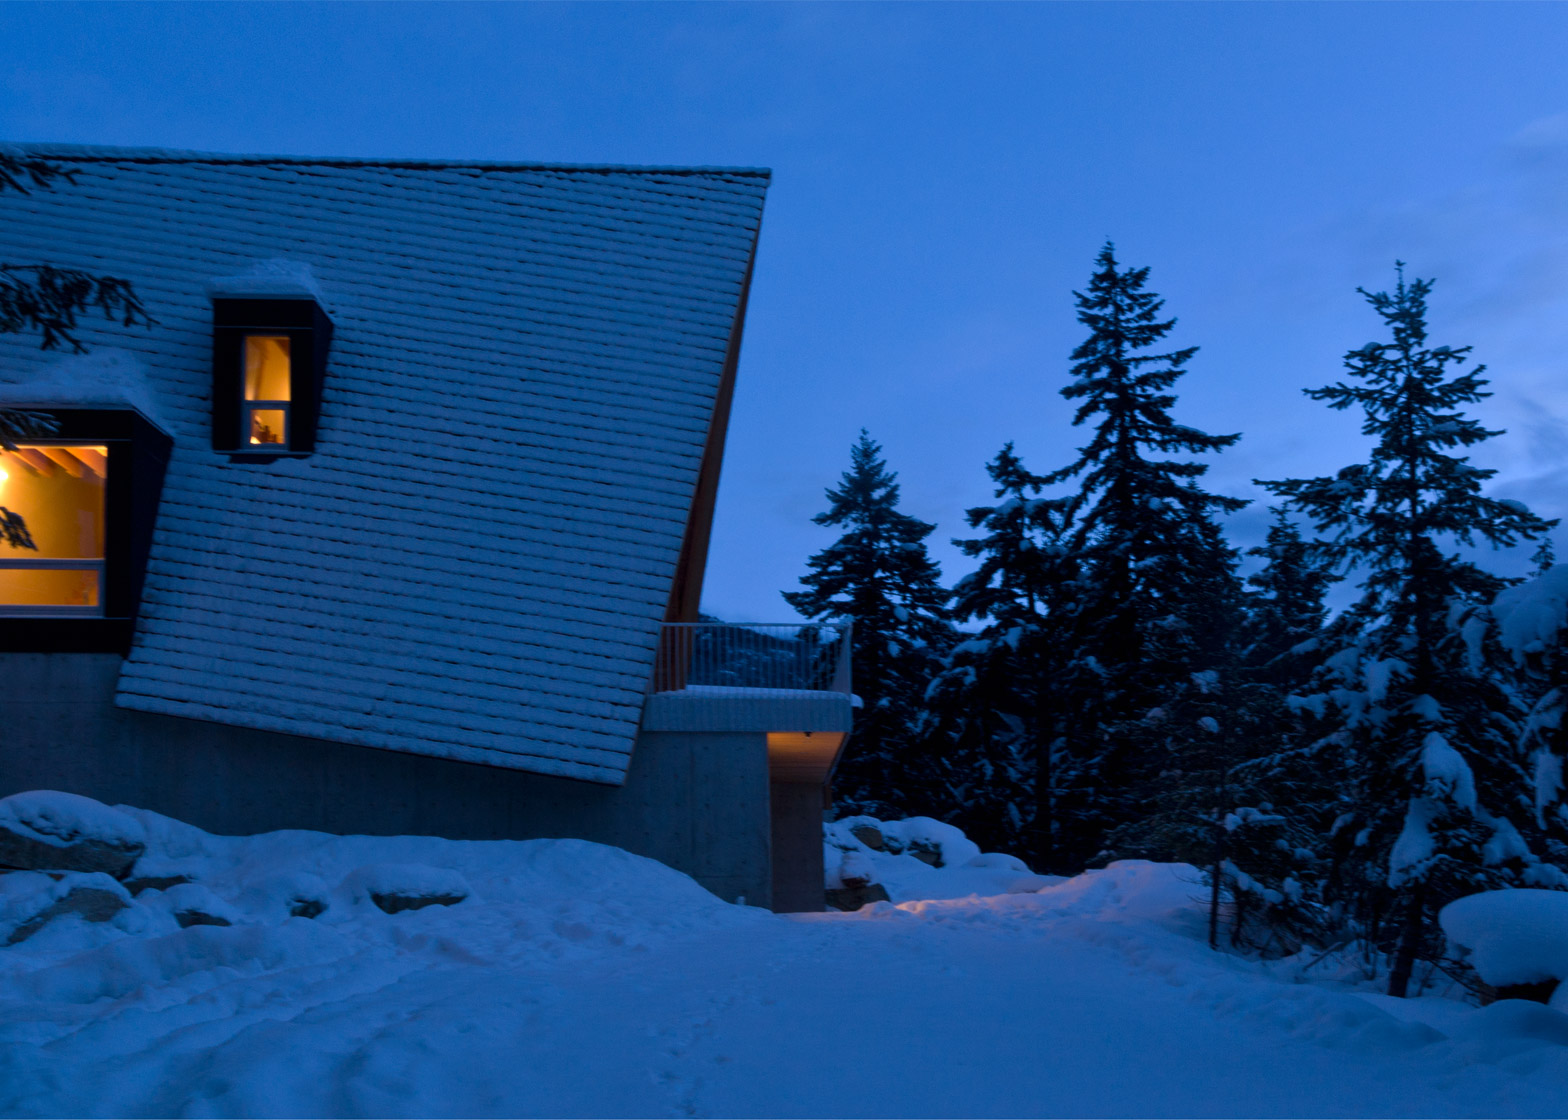 Whistler Cabin, Canada, by Scott and Scott